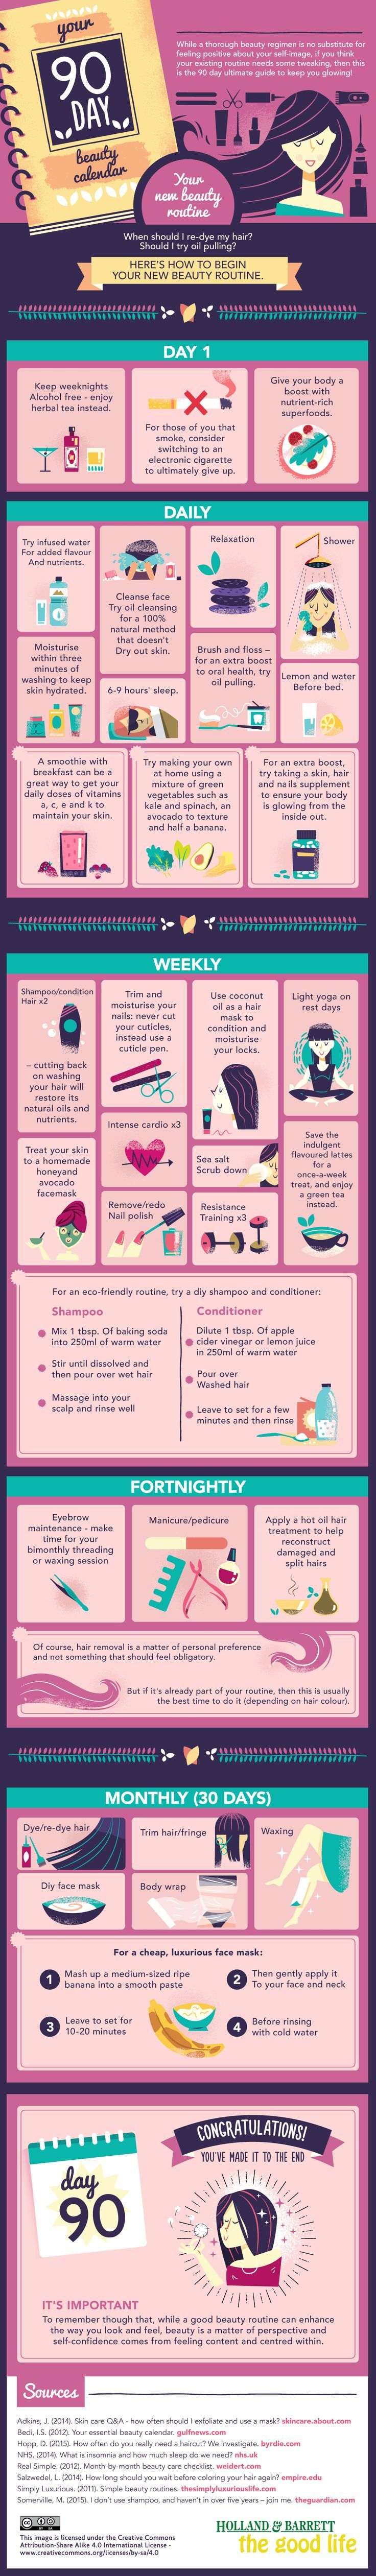 5 Easy Ways To Stay Healthy And Fit.  Take a look at more at the picture link